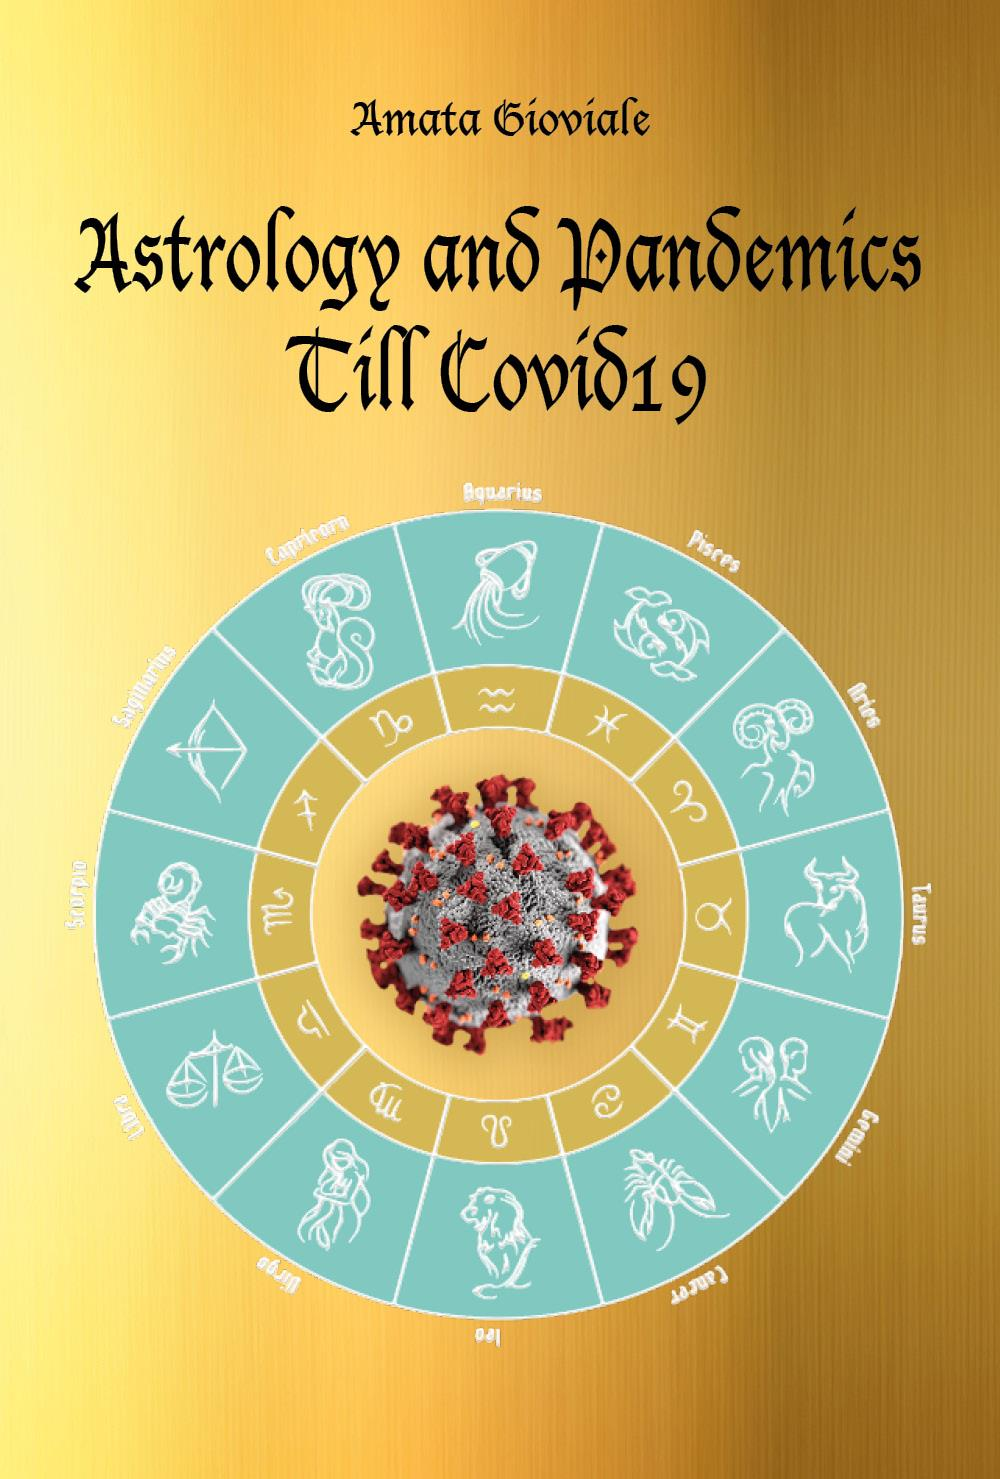 Astrology and Pandemics Till Covid19